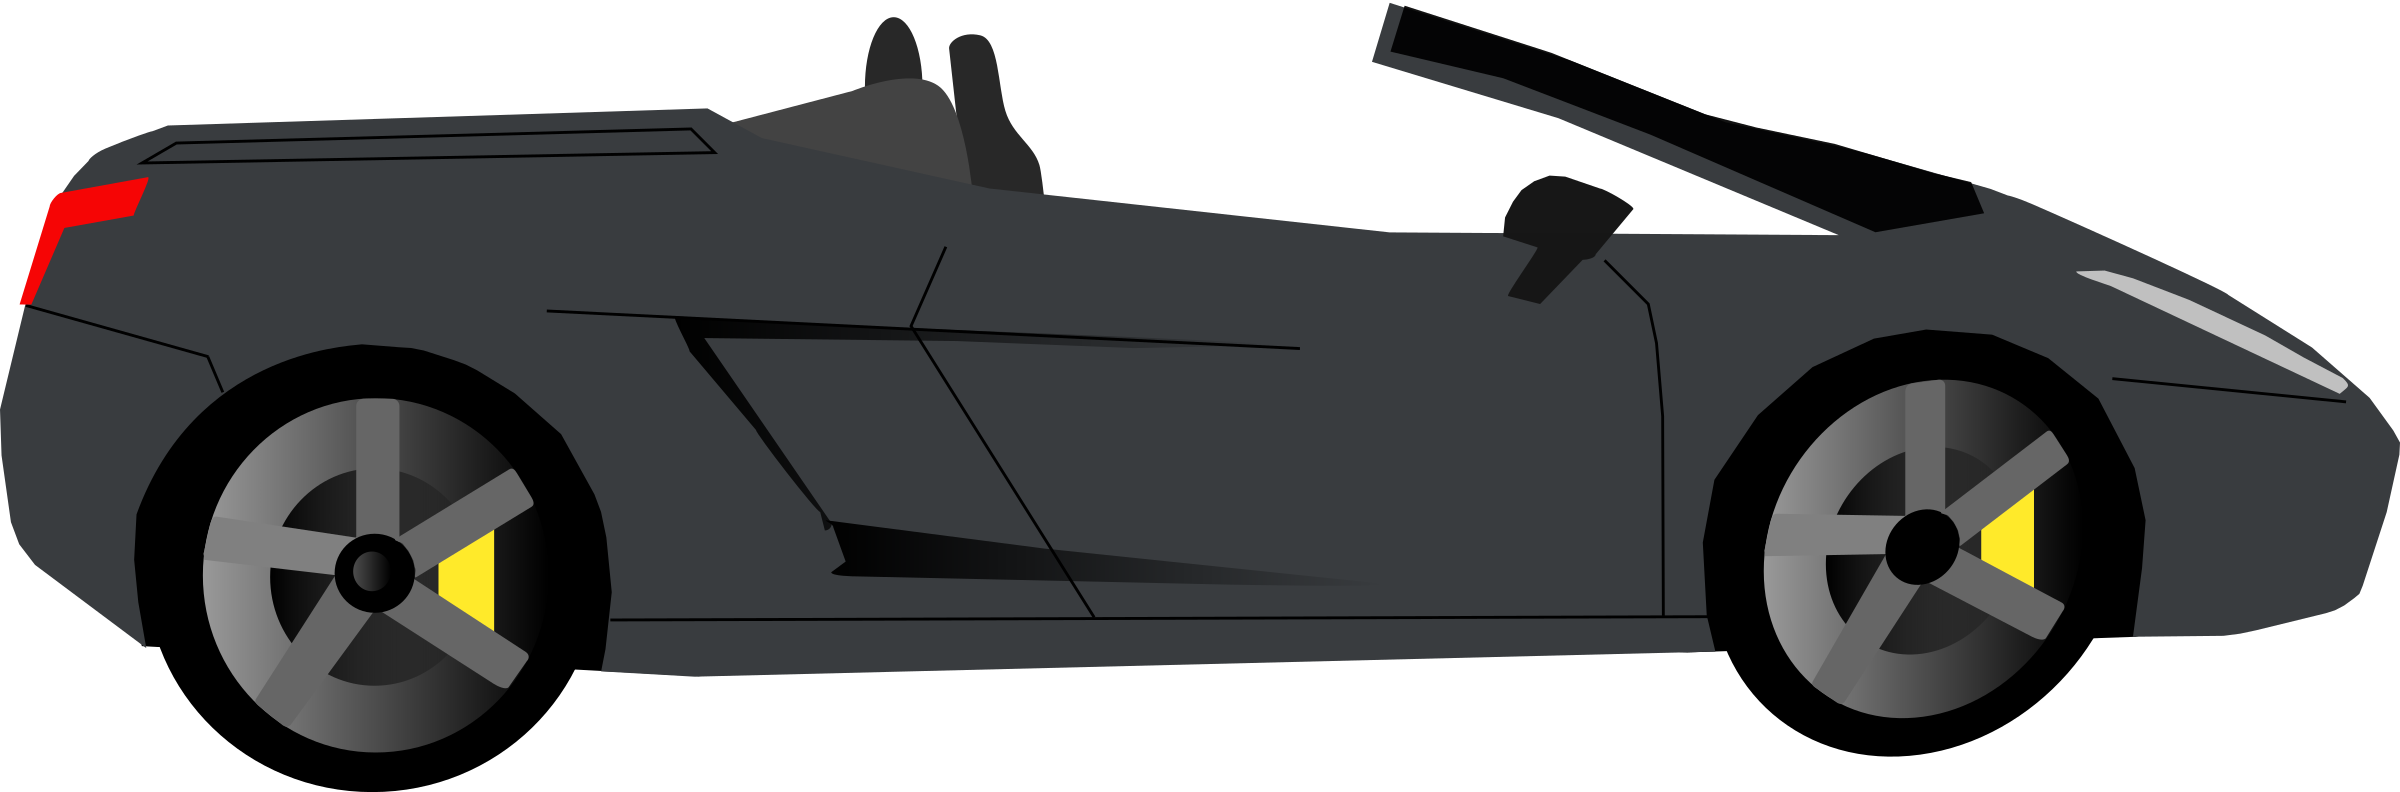 vector roads side view